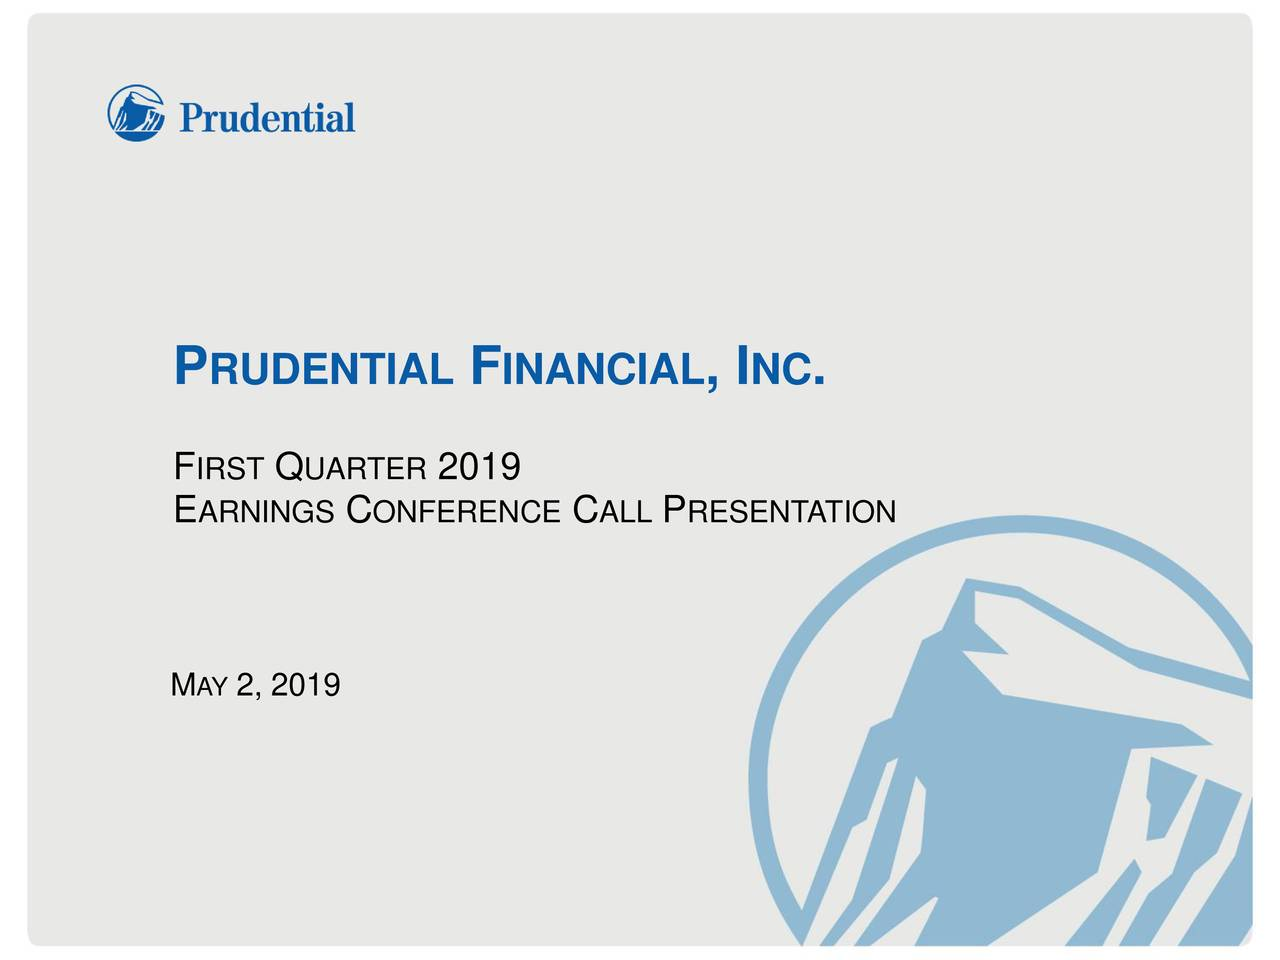 FIRSTQUARTER2019 EARNINGSCONFERENCECALLPRESENTATION MAY2, 2019